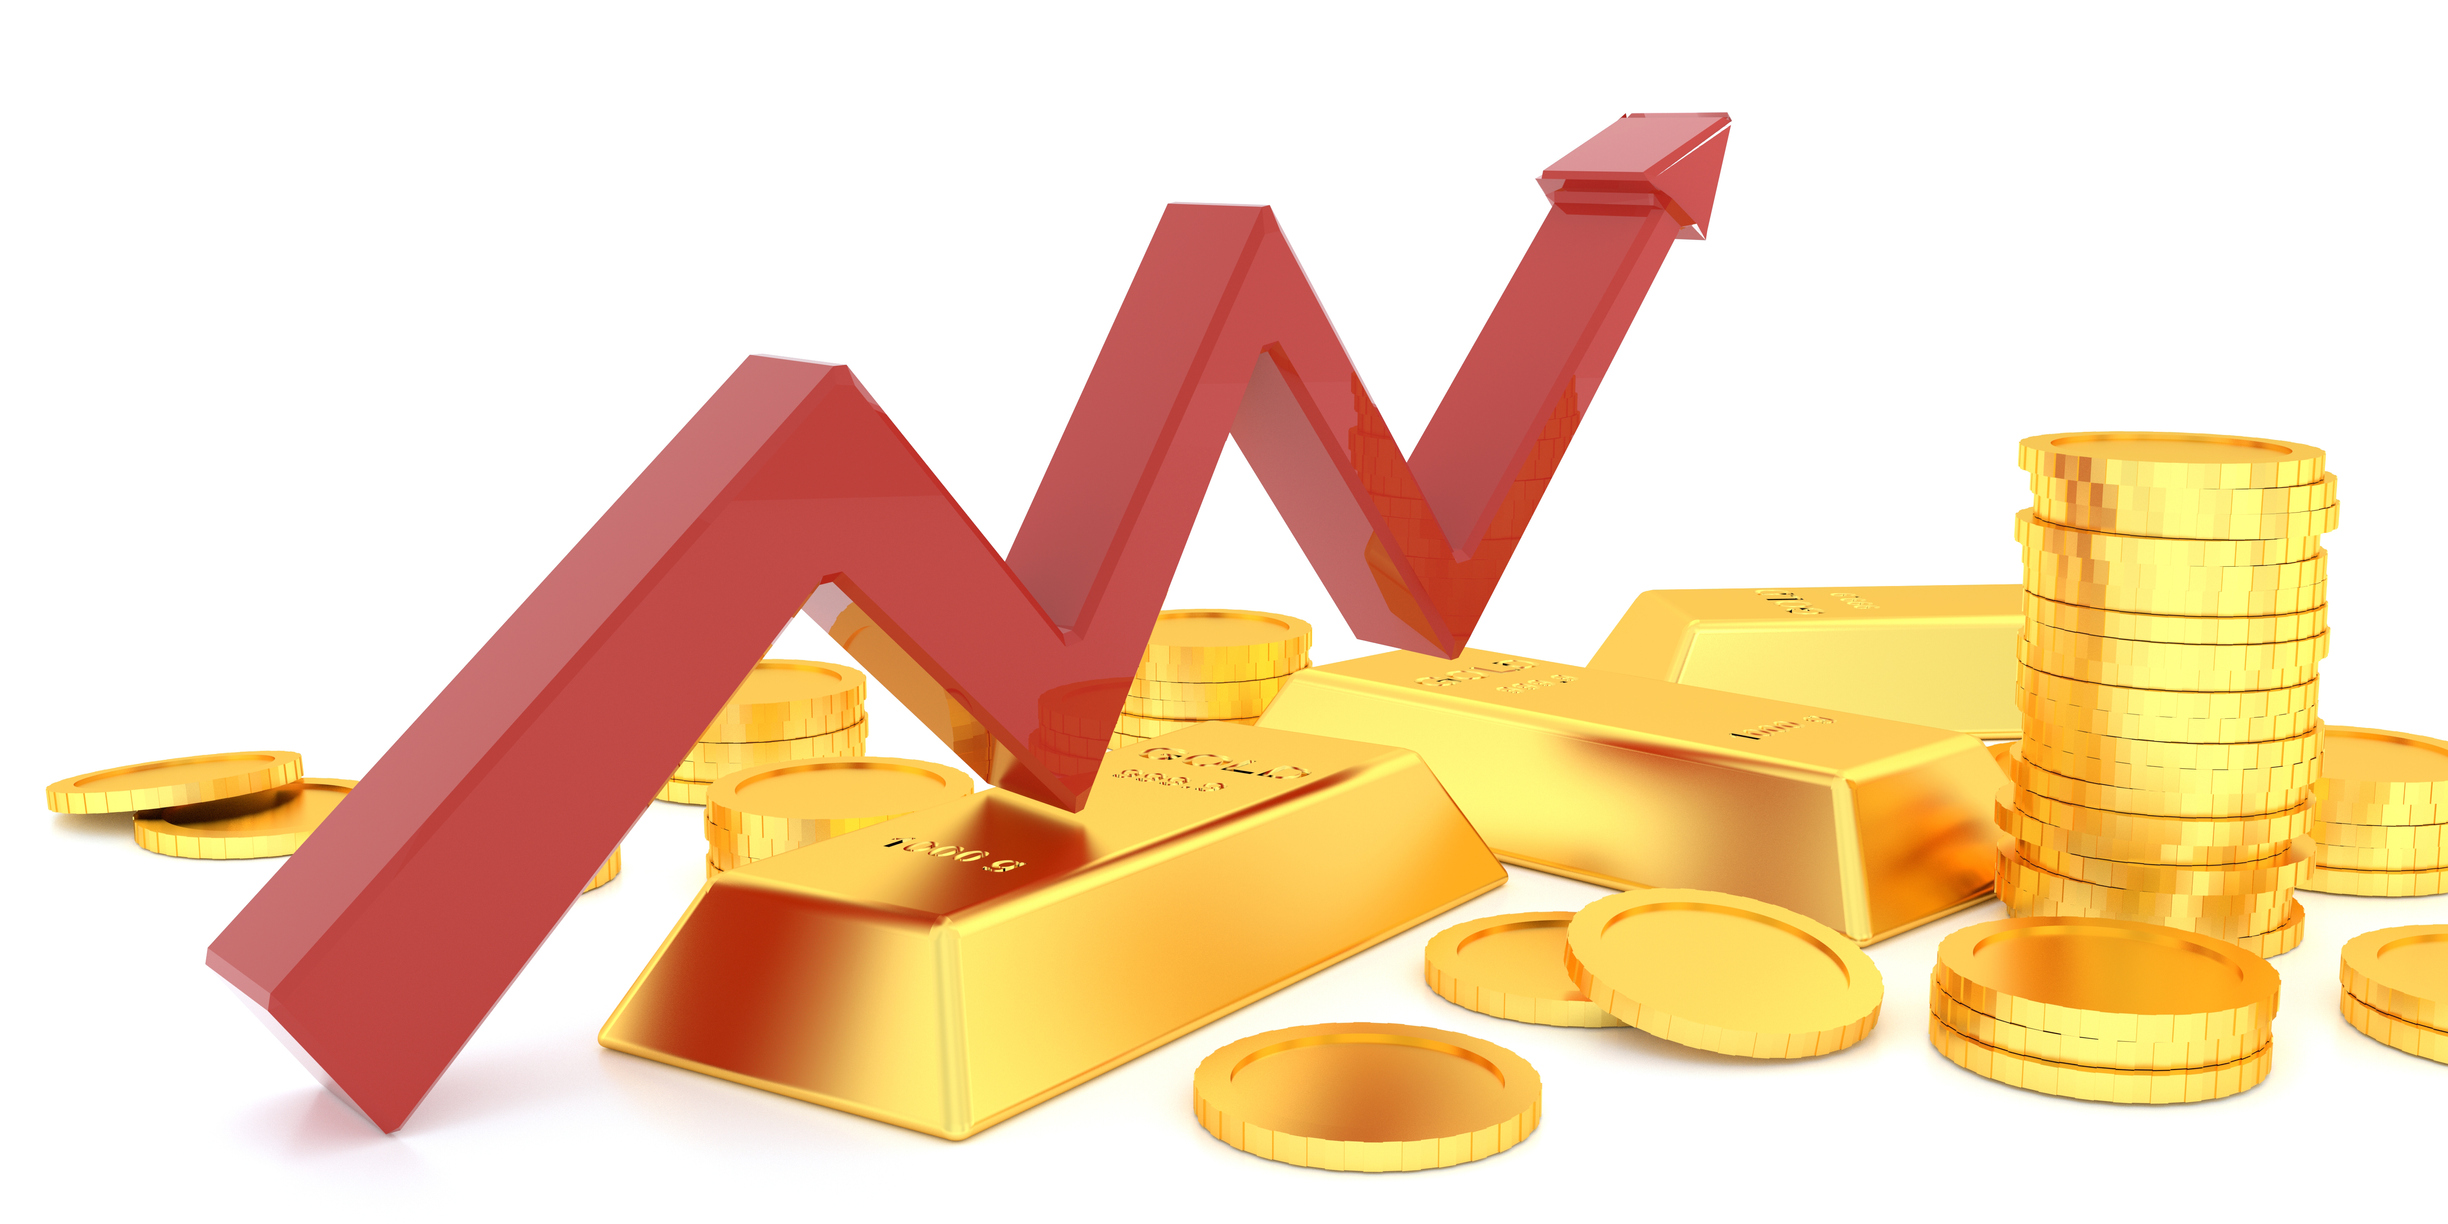 Clipart gold price today svg free download The Central Banks Could Cause Gold Prices to Go Higher svg free download